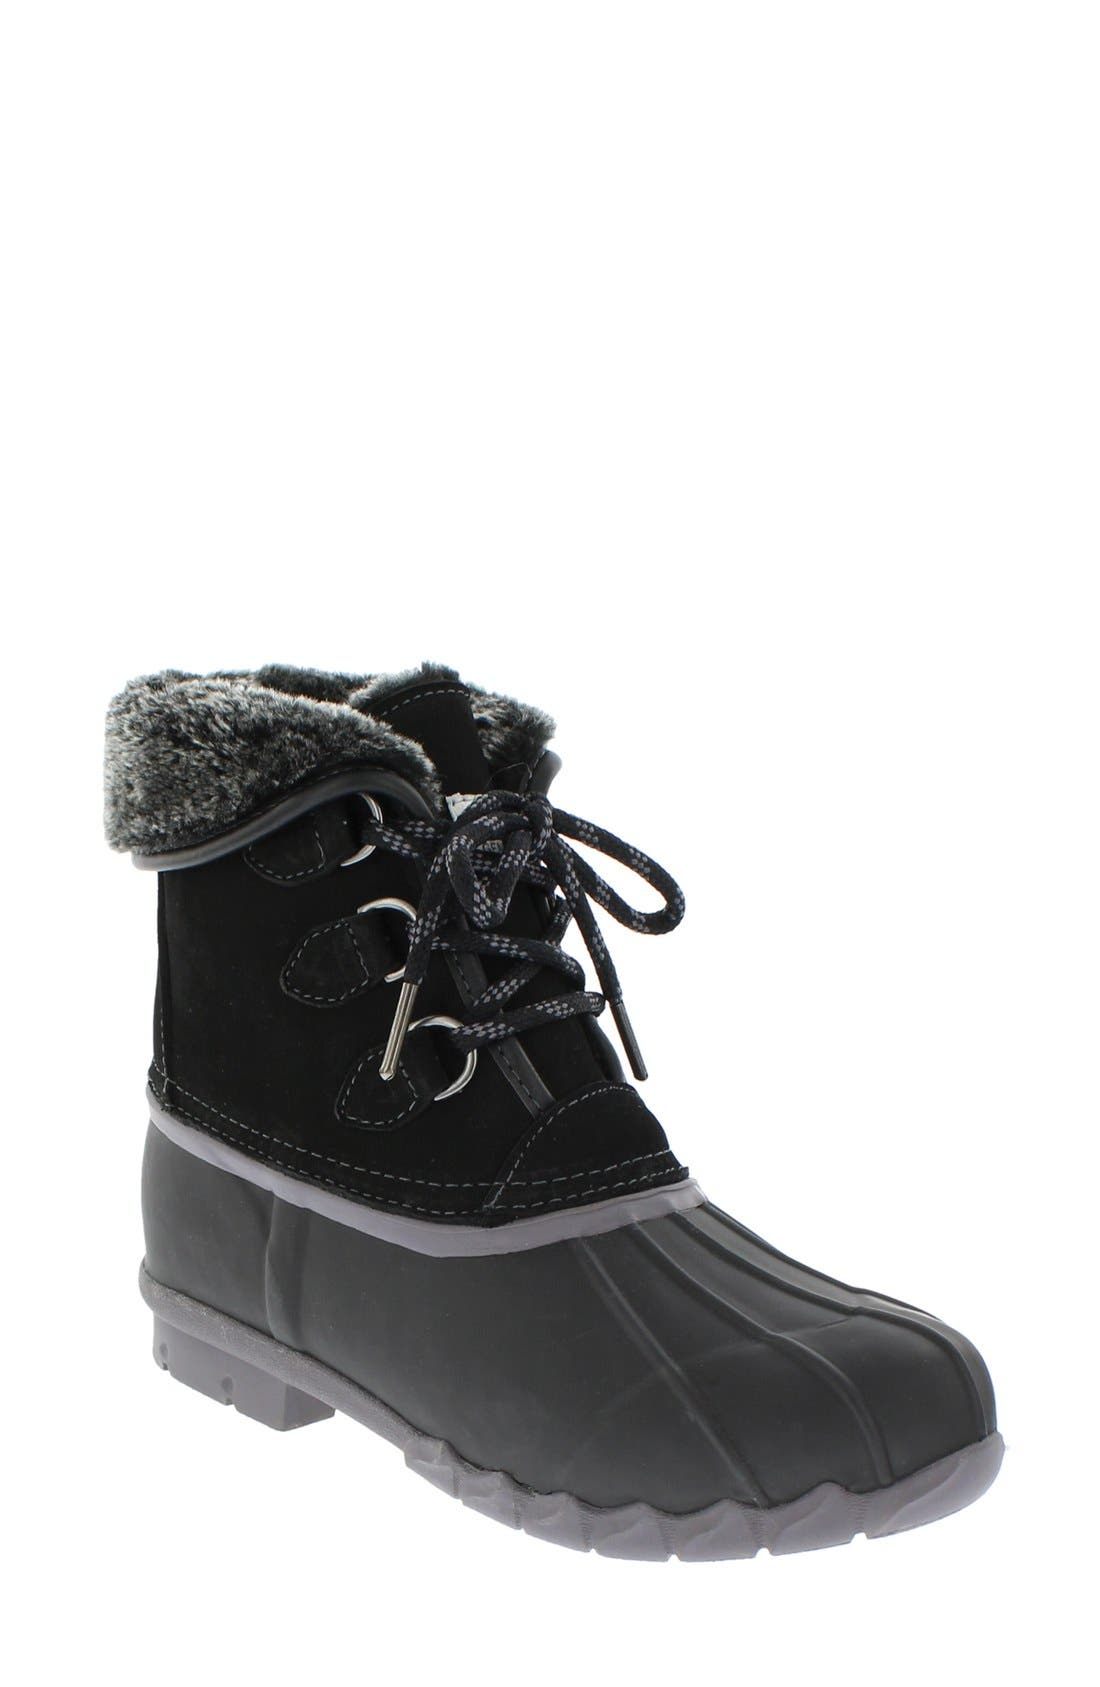 Alternate Image 1 Selected - Sporto Defrost Faux Fur Lined Duck Boot (Women)